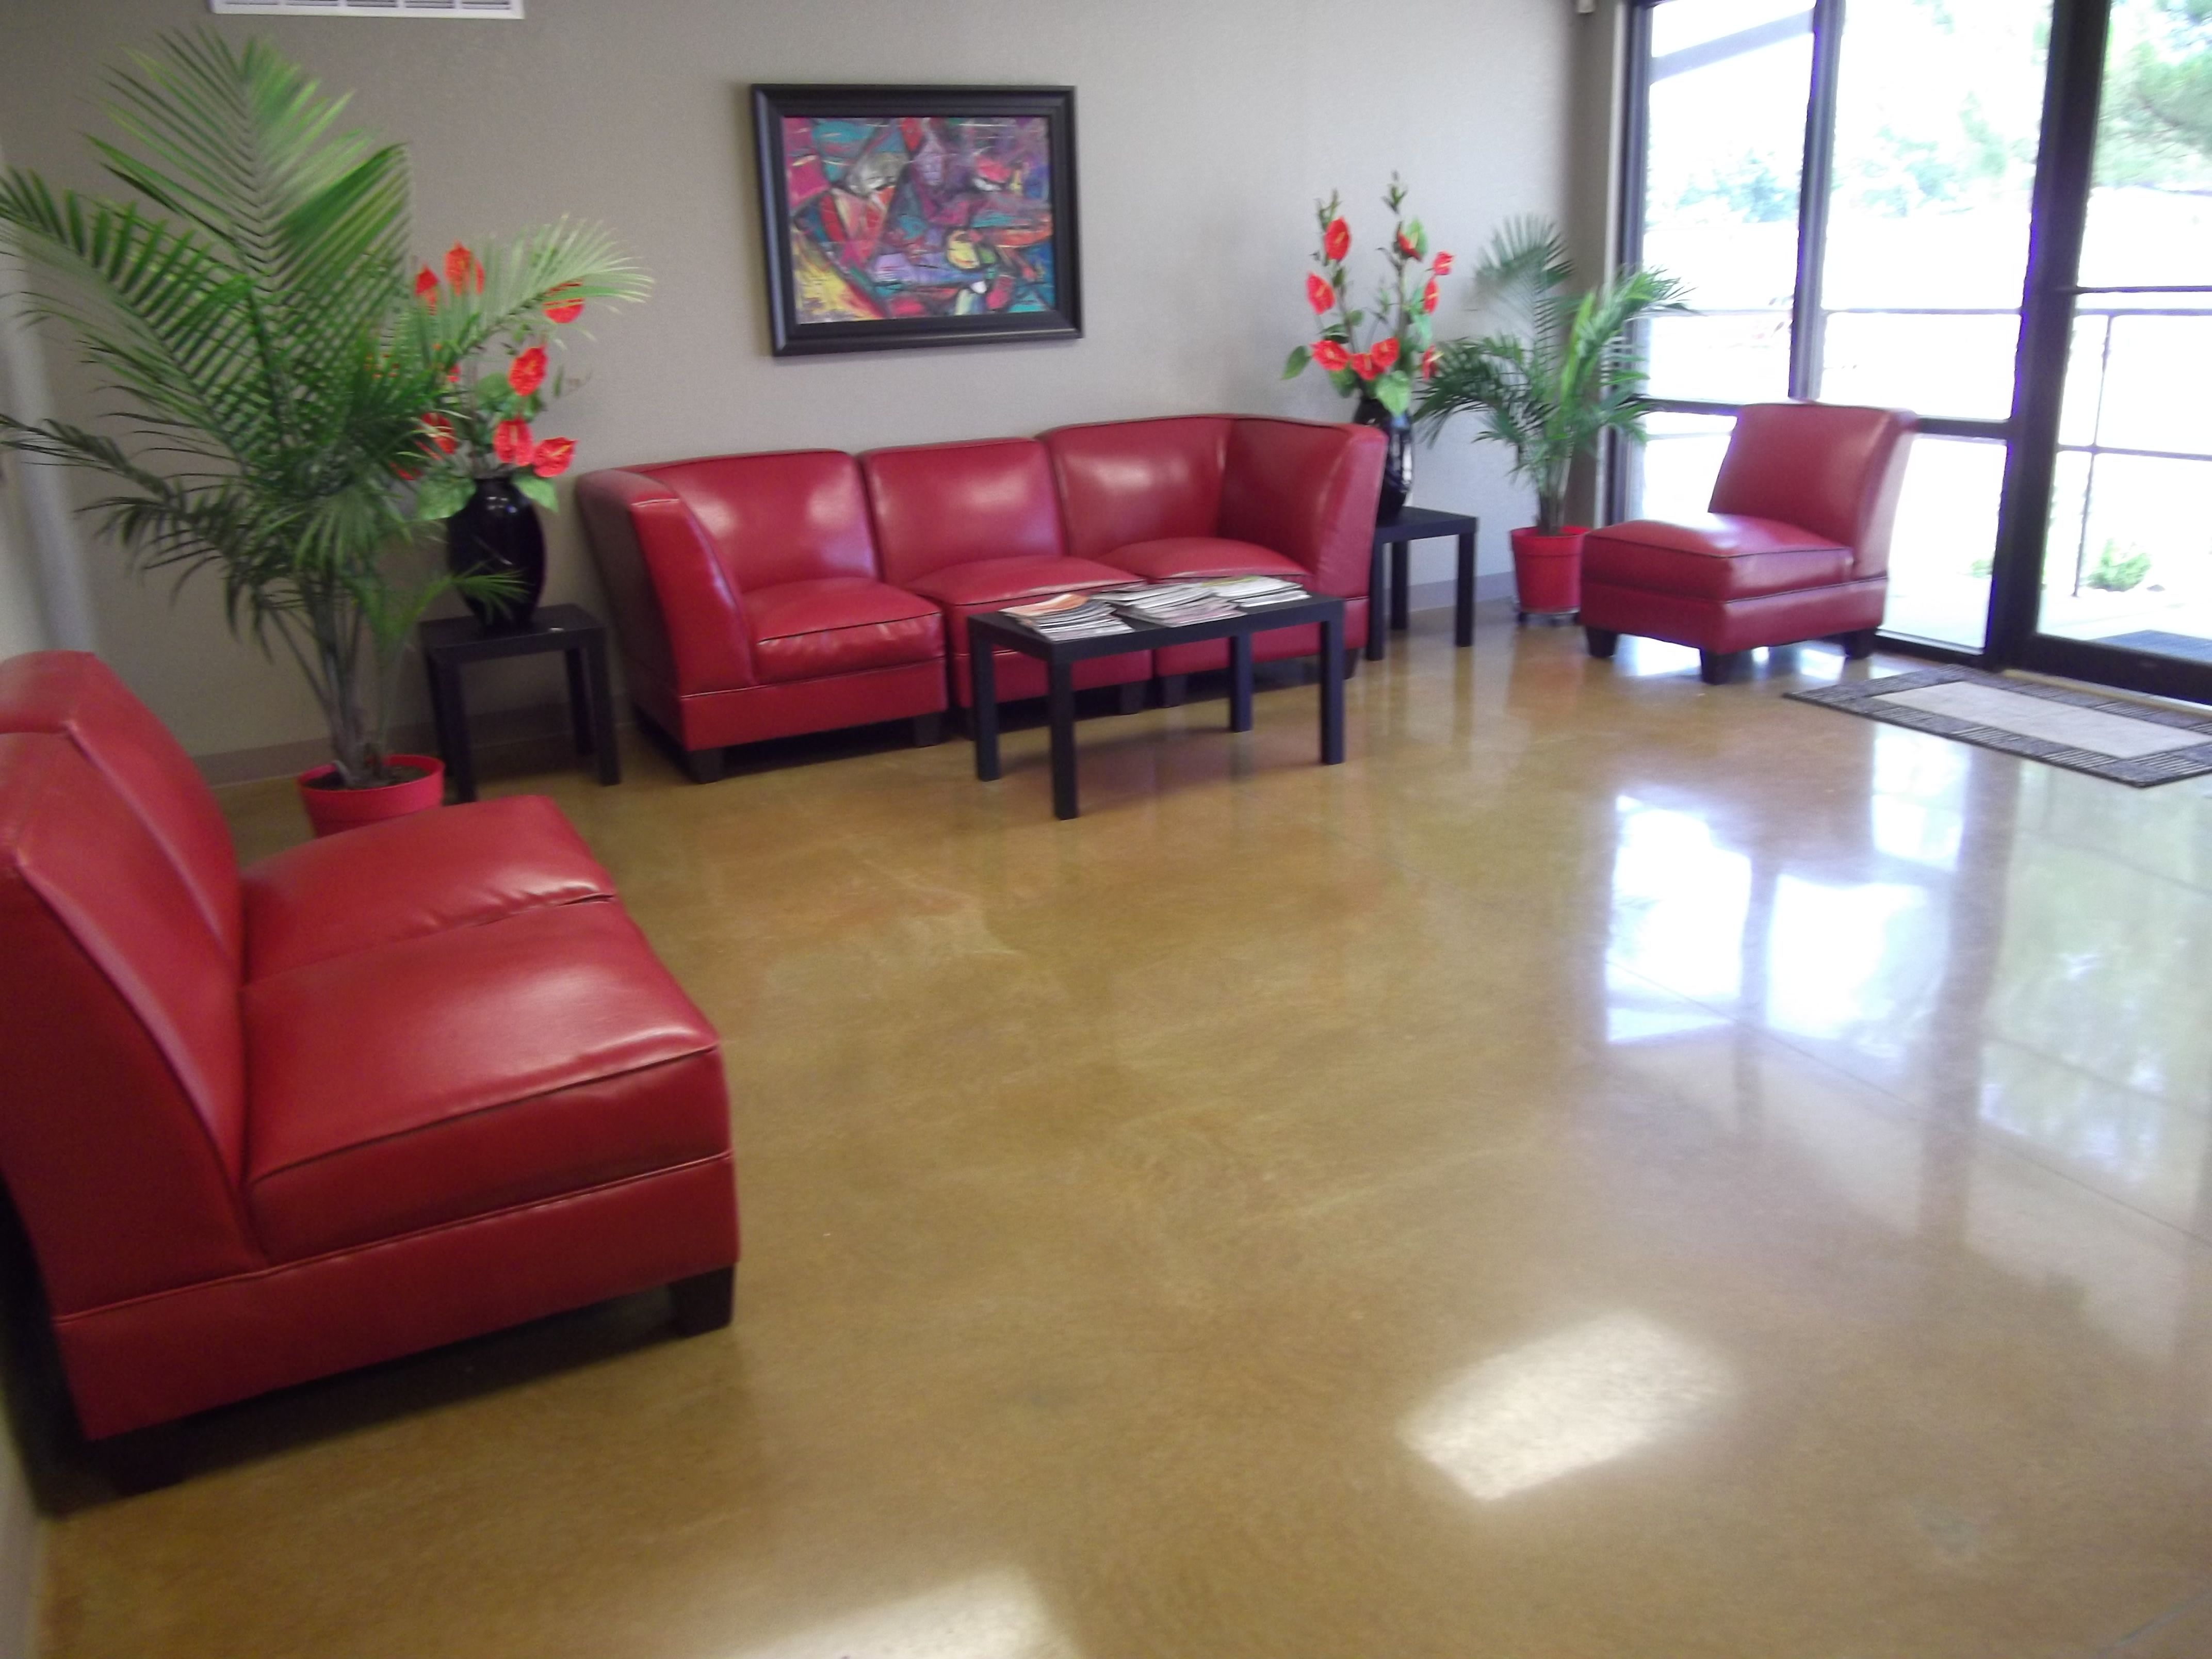 Decorative Painting Concrete Floors With Epoxy Design Combine Red Sofa For Livingroom Decor